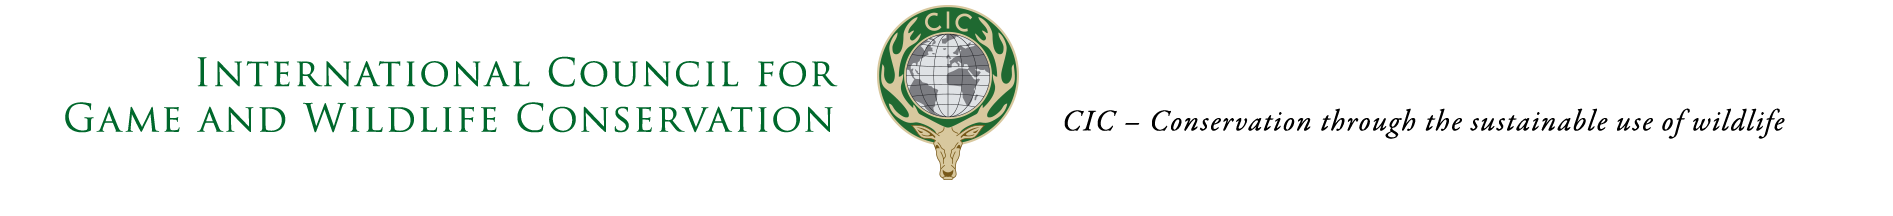 Cic-wildlife